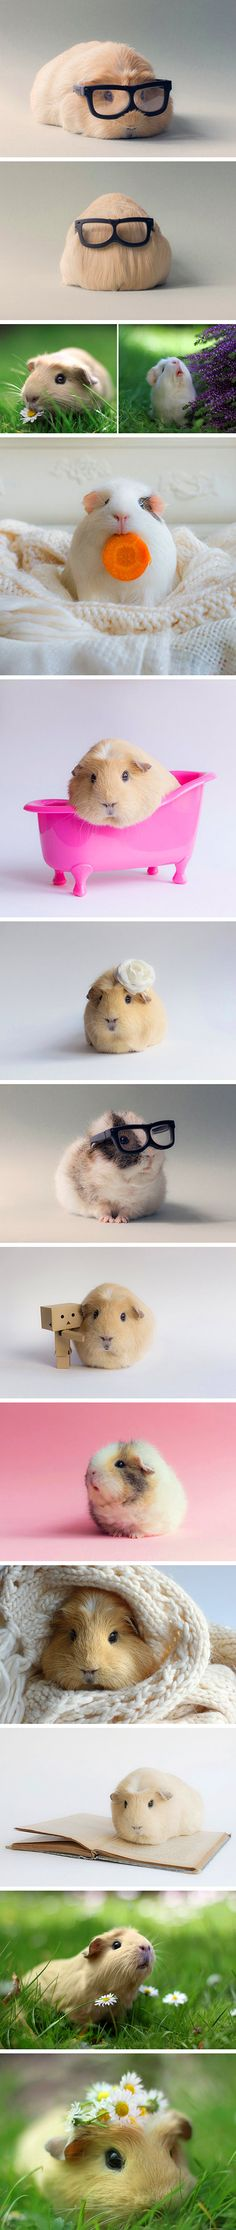 Booboo The Guinea Pig and Friends Get Put in Adorable Images, Become Internet Stars - TechEBlog